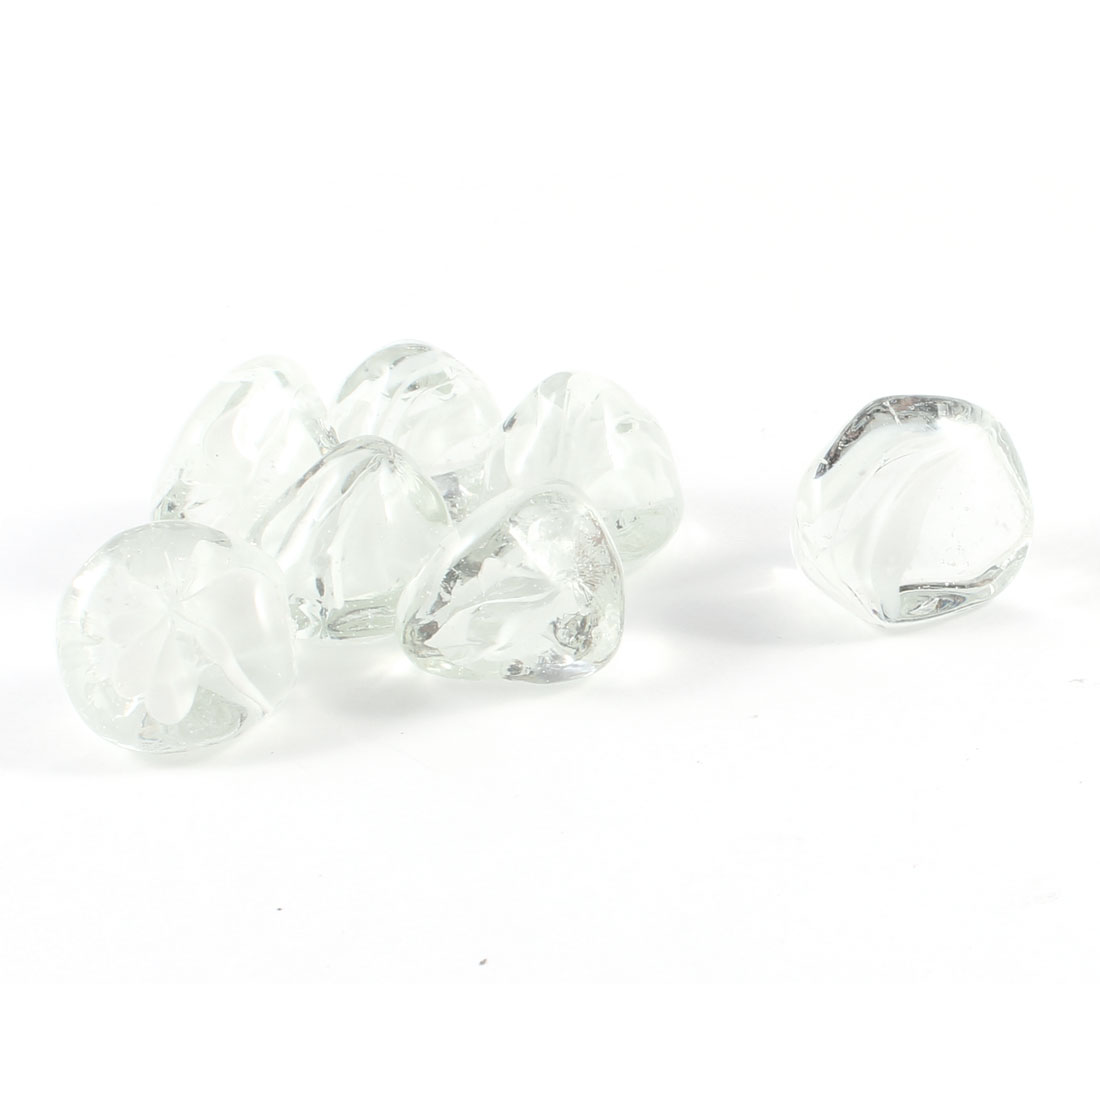 7 Pcs White Clear Glass Stones Ornament for Fish Tank